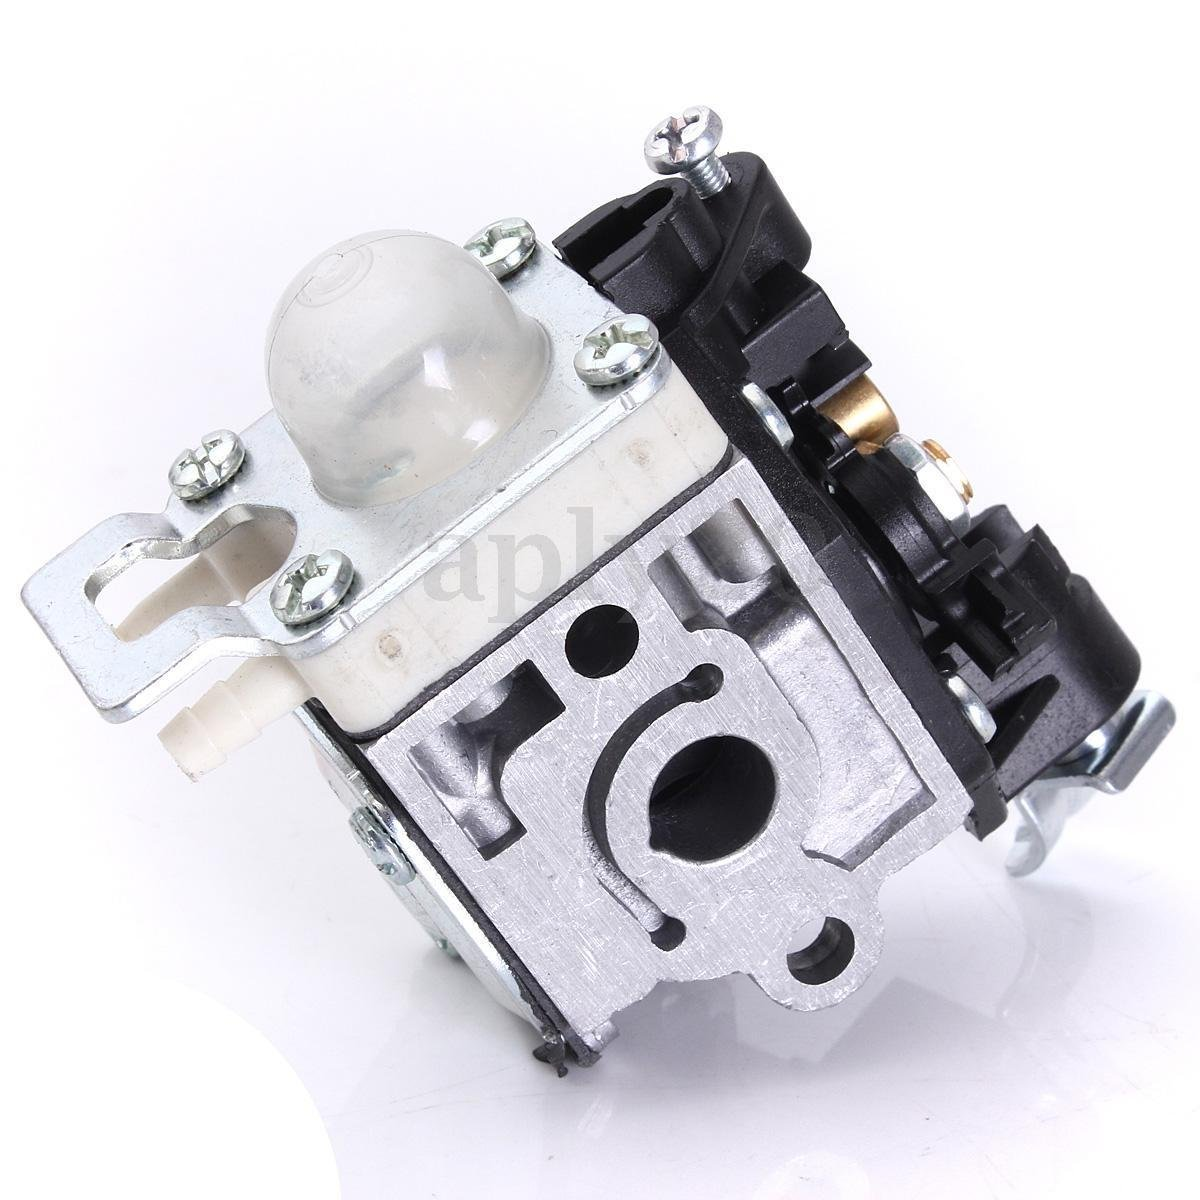 Carb Carburetor For Echo ES250 PB250 Power Leaf Blower A021003660 RB-K106 US ..#from-by#_aply20~hee15182158374651